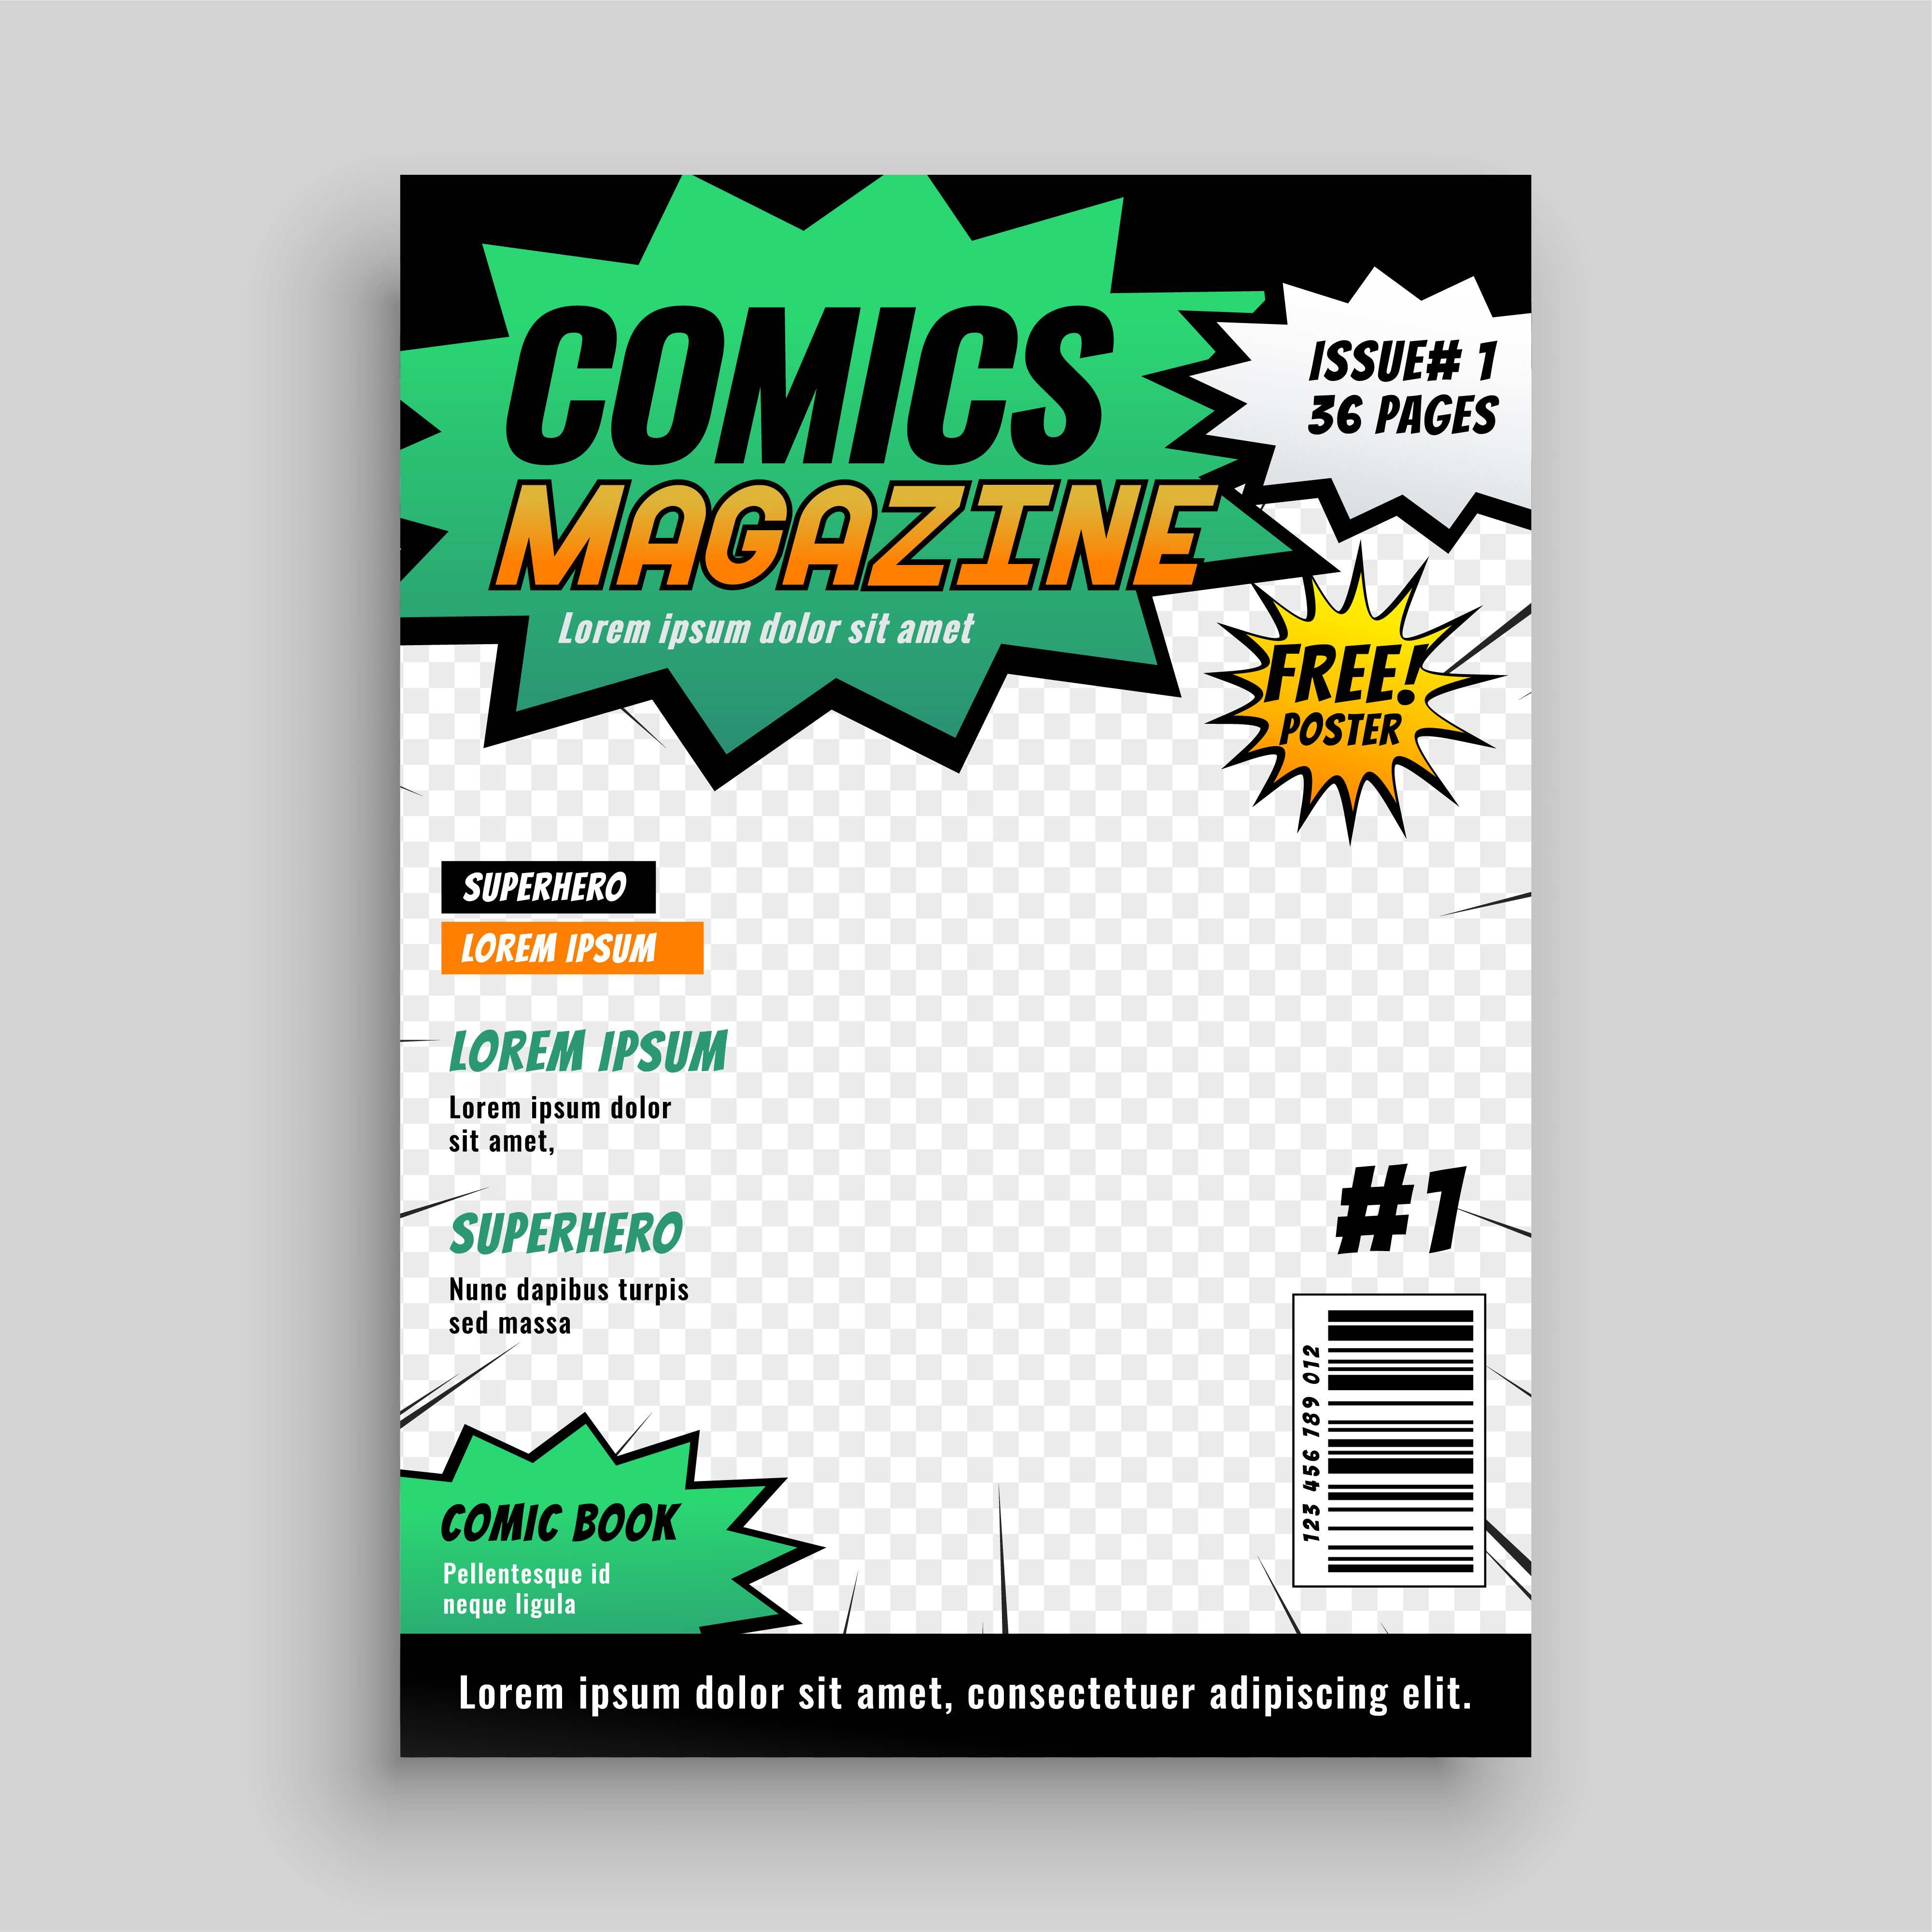 Comic Book Cover Layout : Layout design of comic book cover download free vector